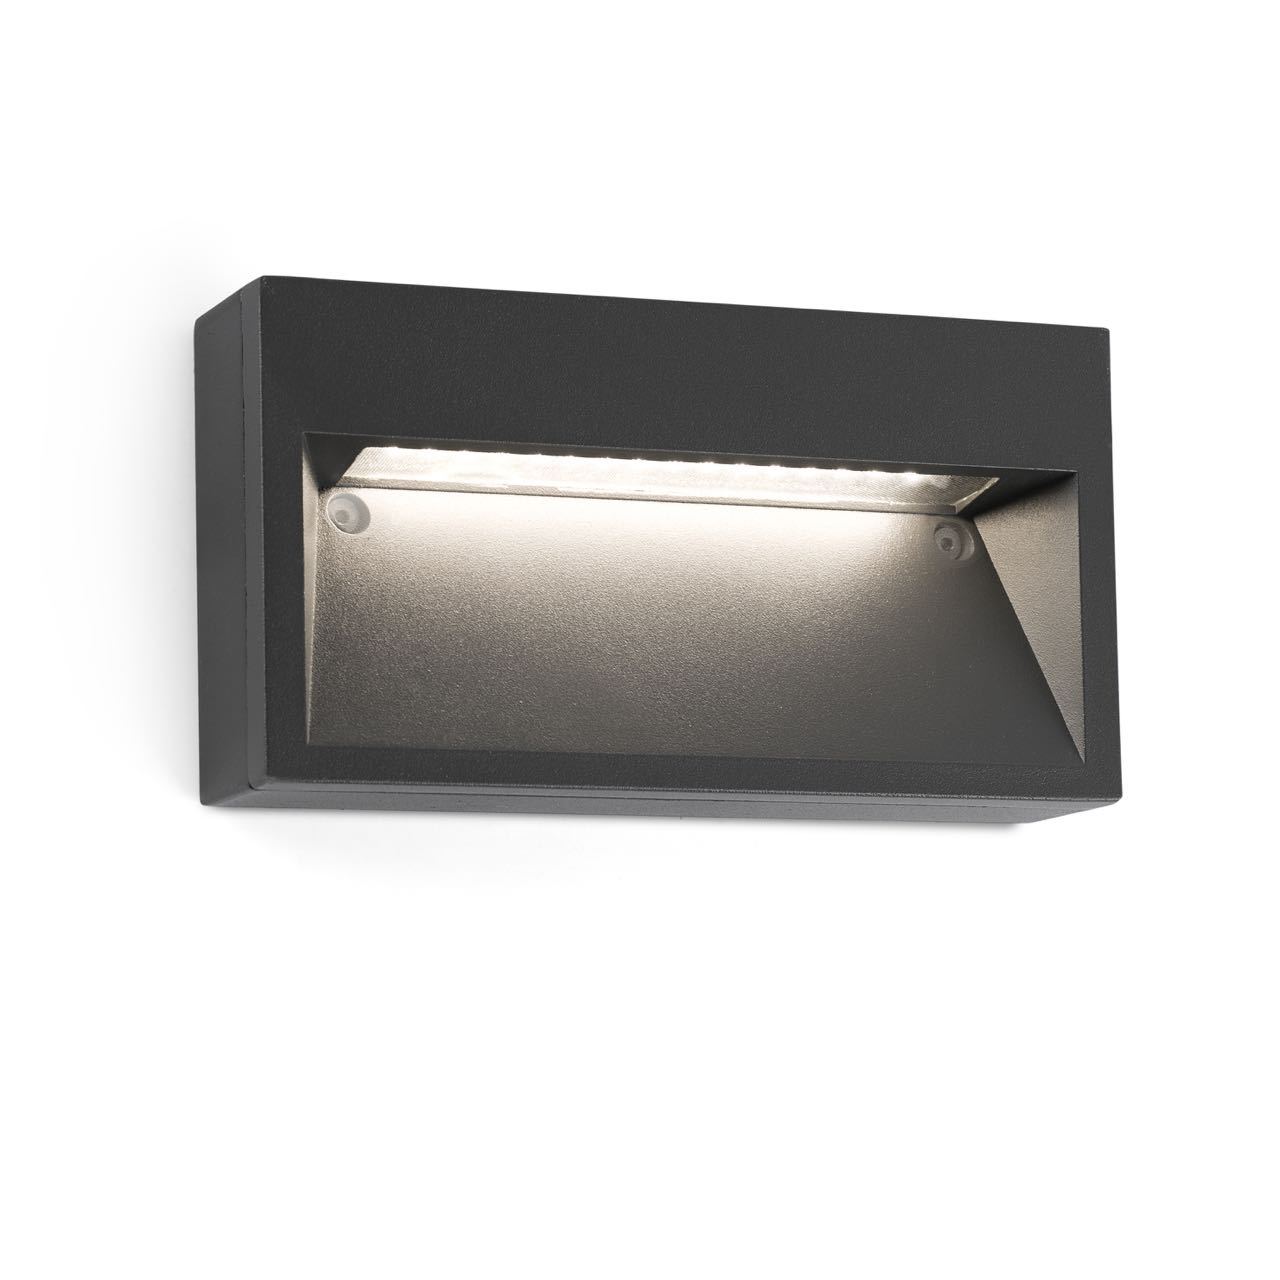 Comprar aplique de pared para jard n con led path de faro for Apliques iluminacion exterior pared